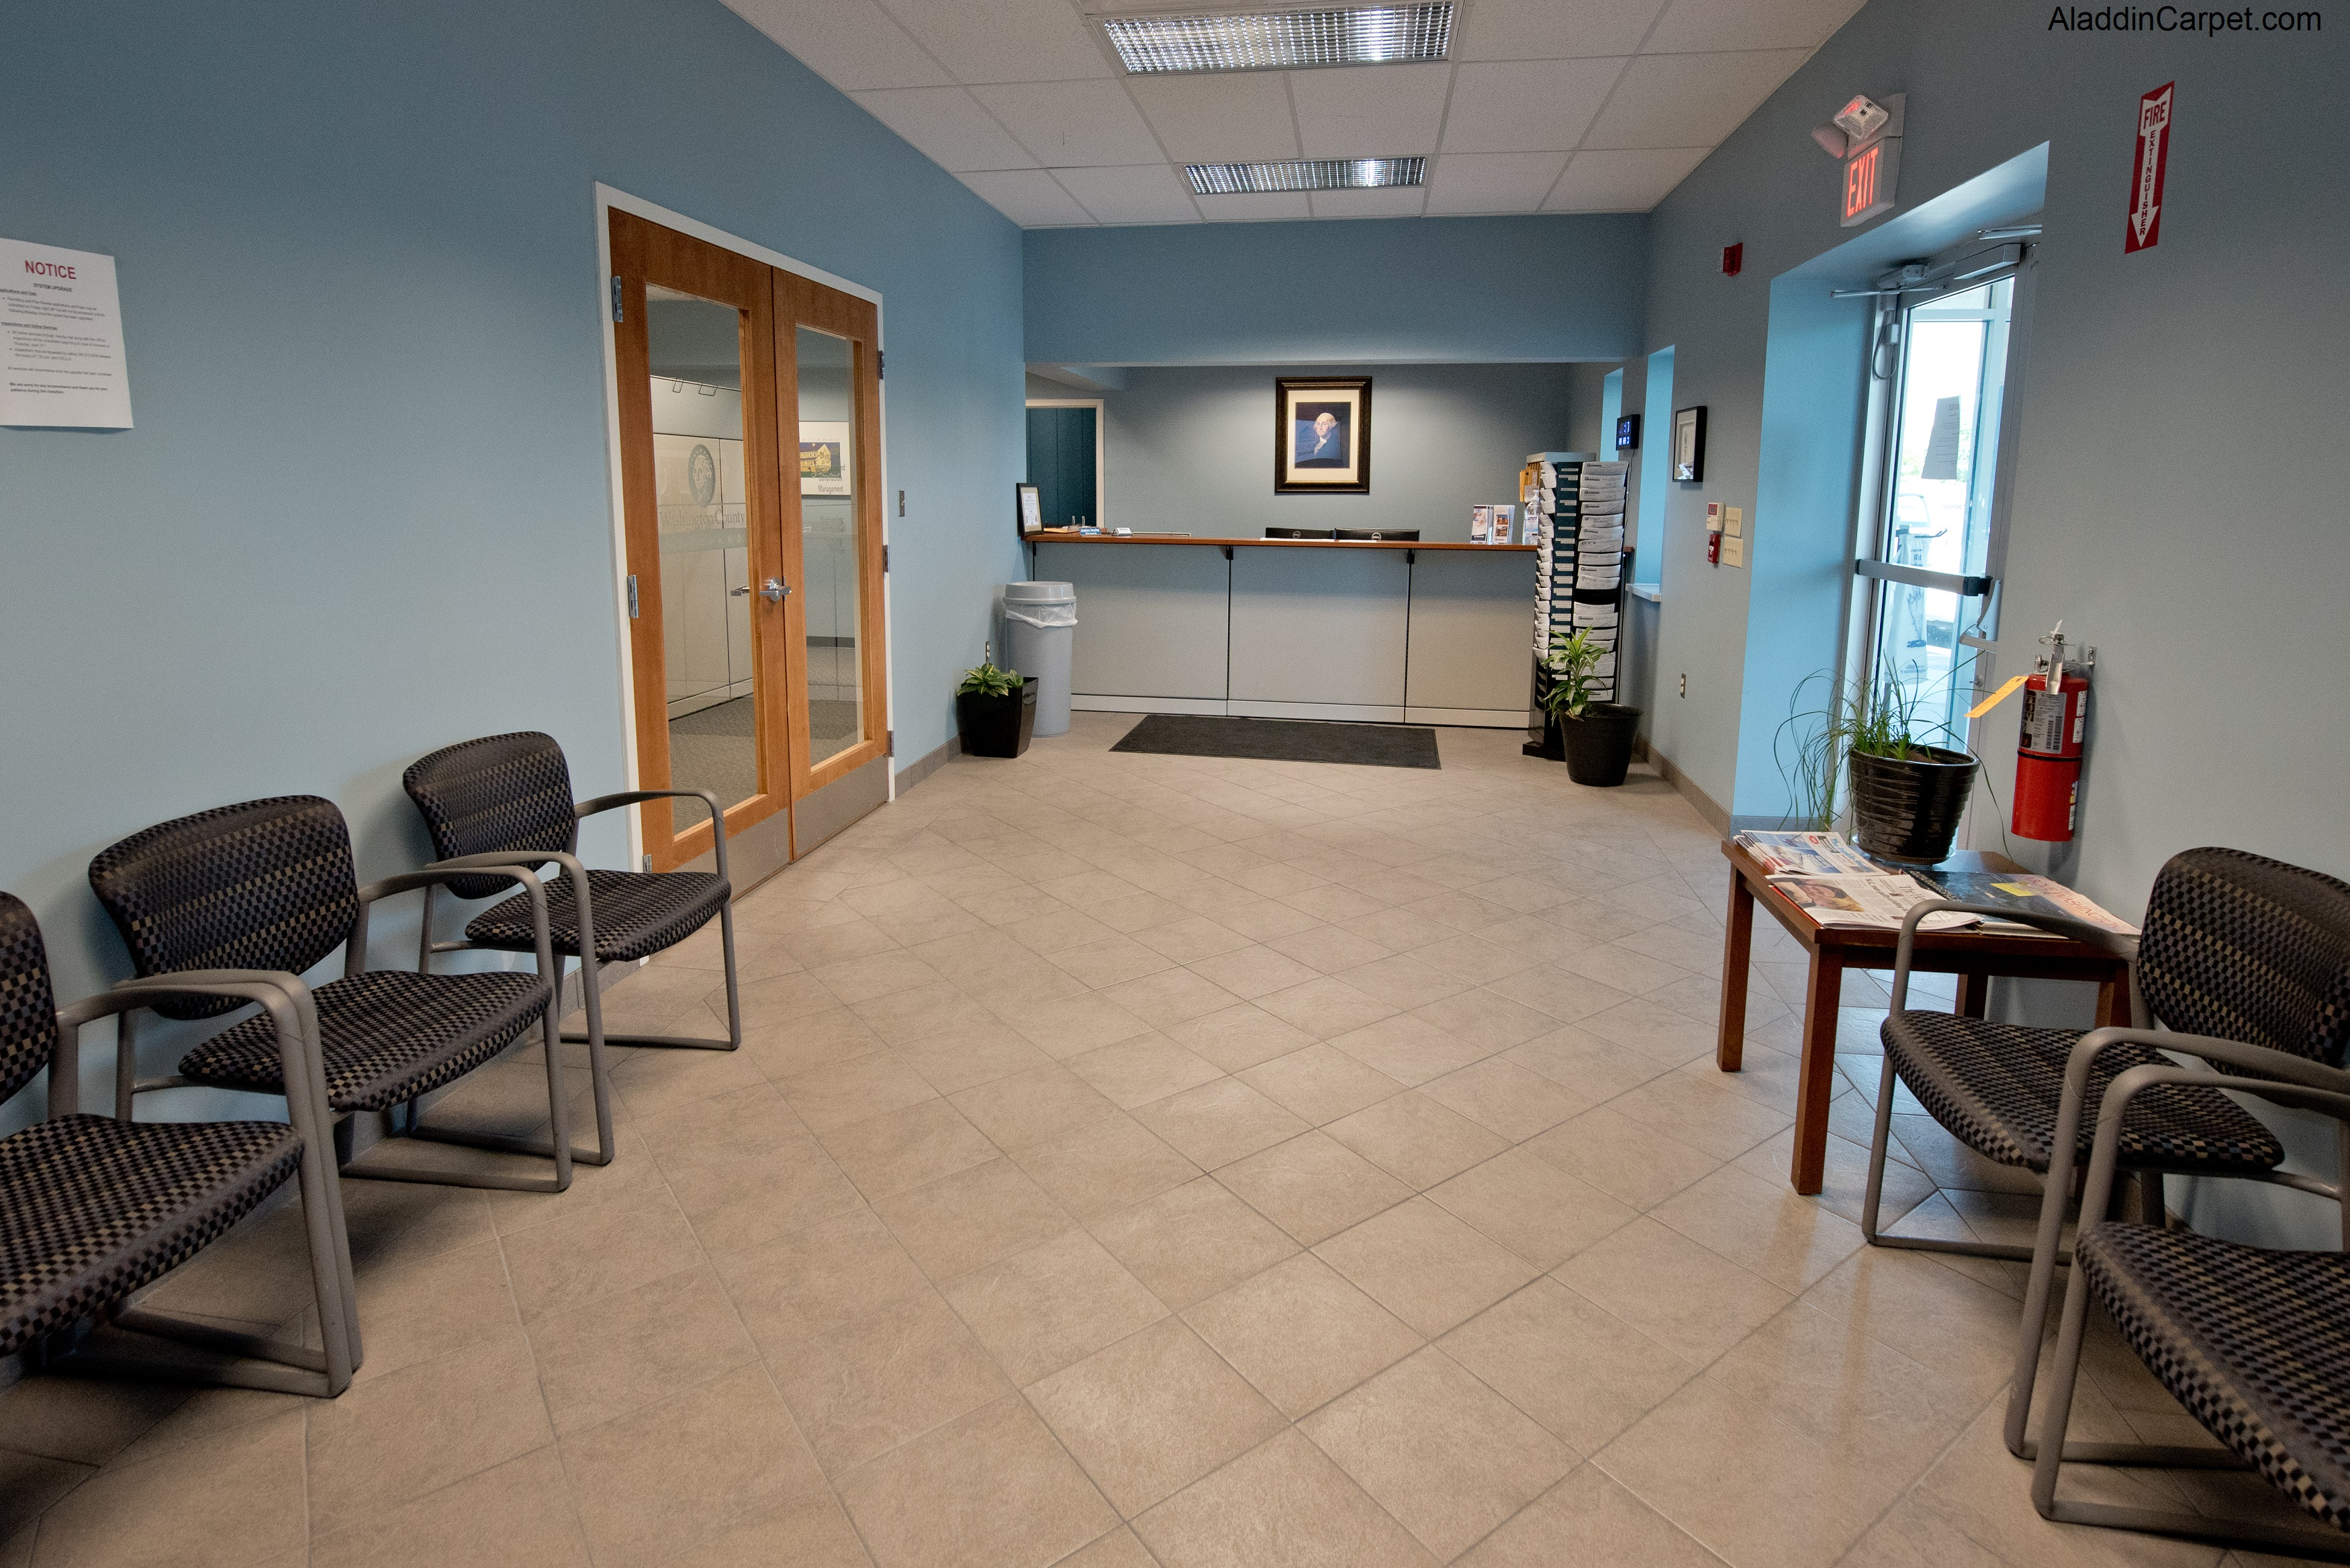 Commercial Flooring West Baltimore Street Hagerstown